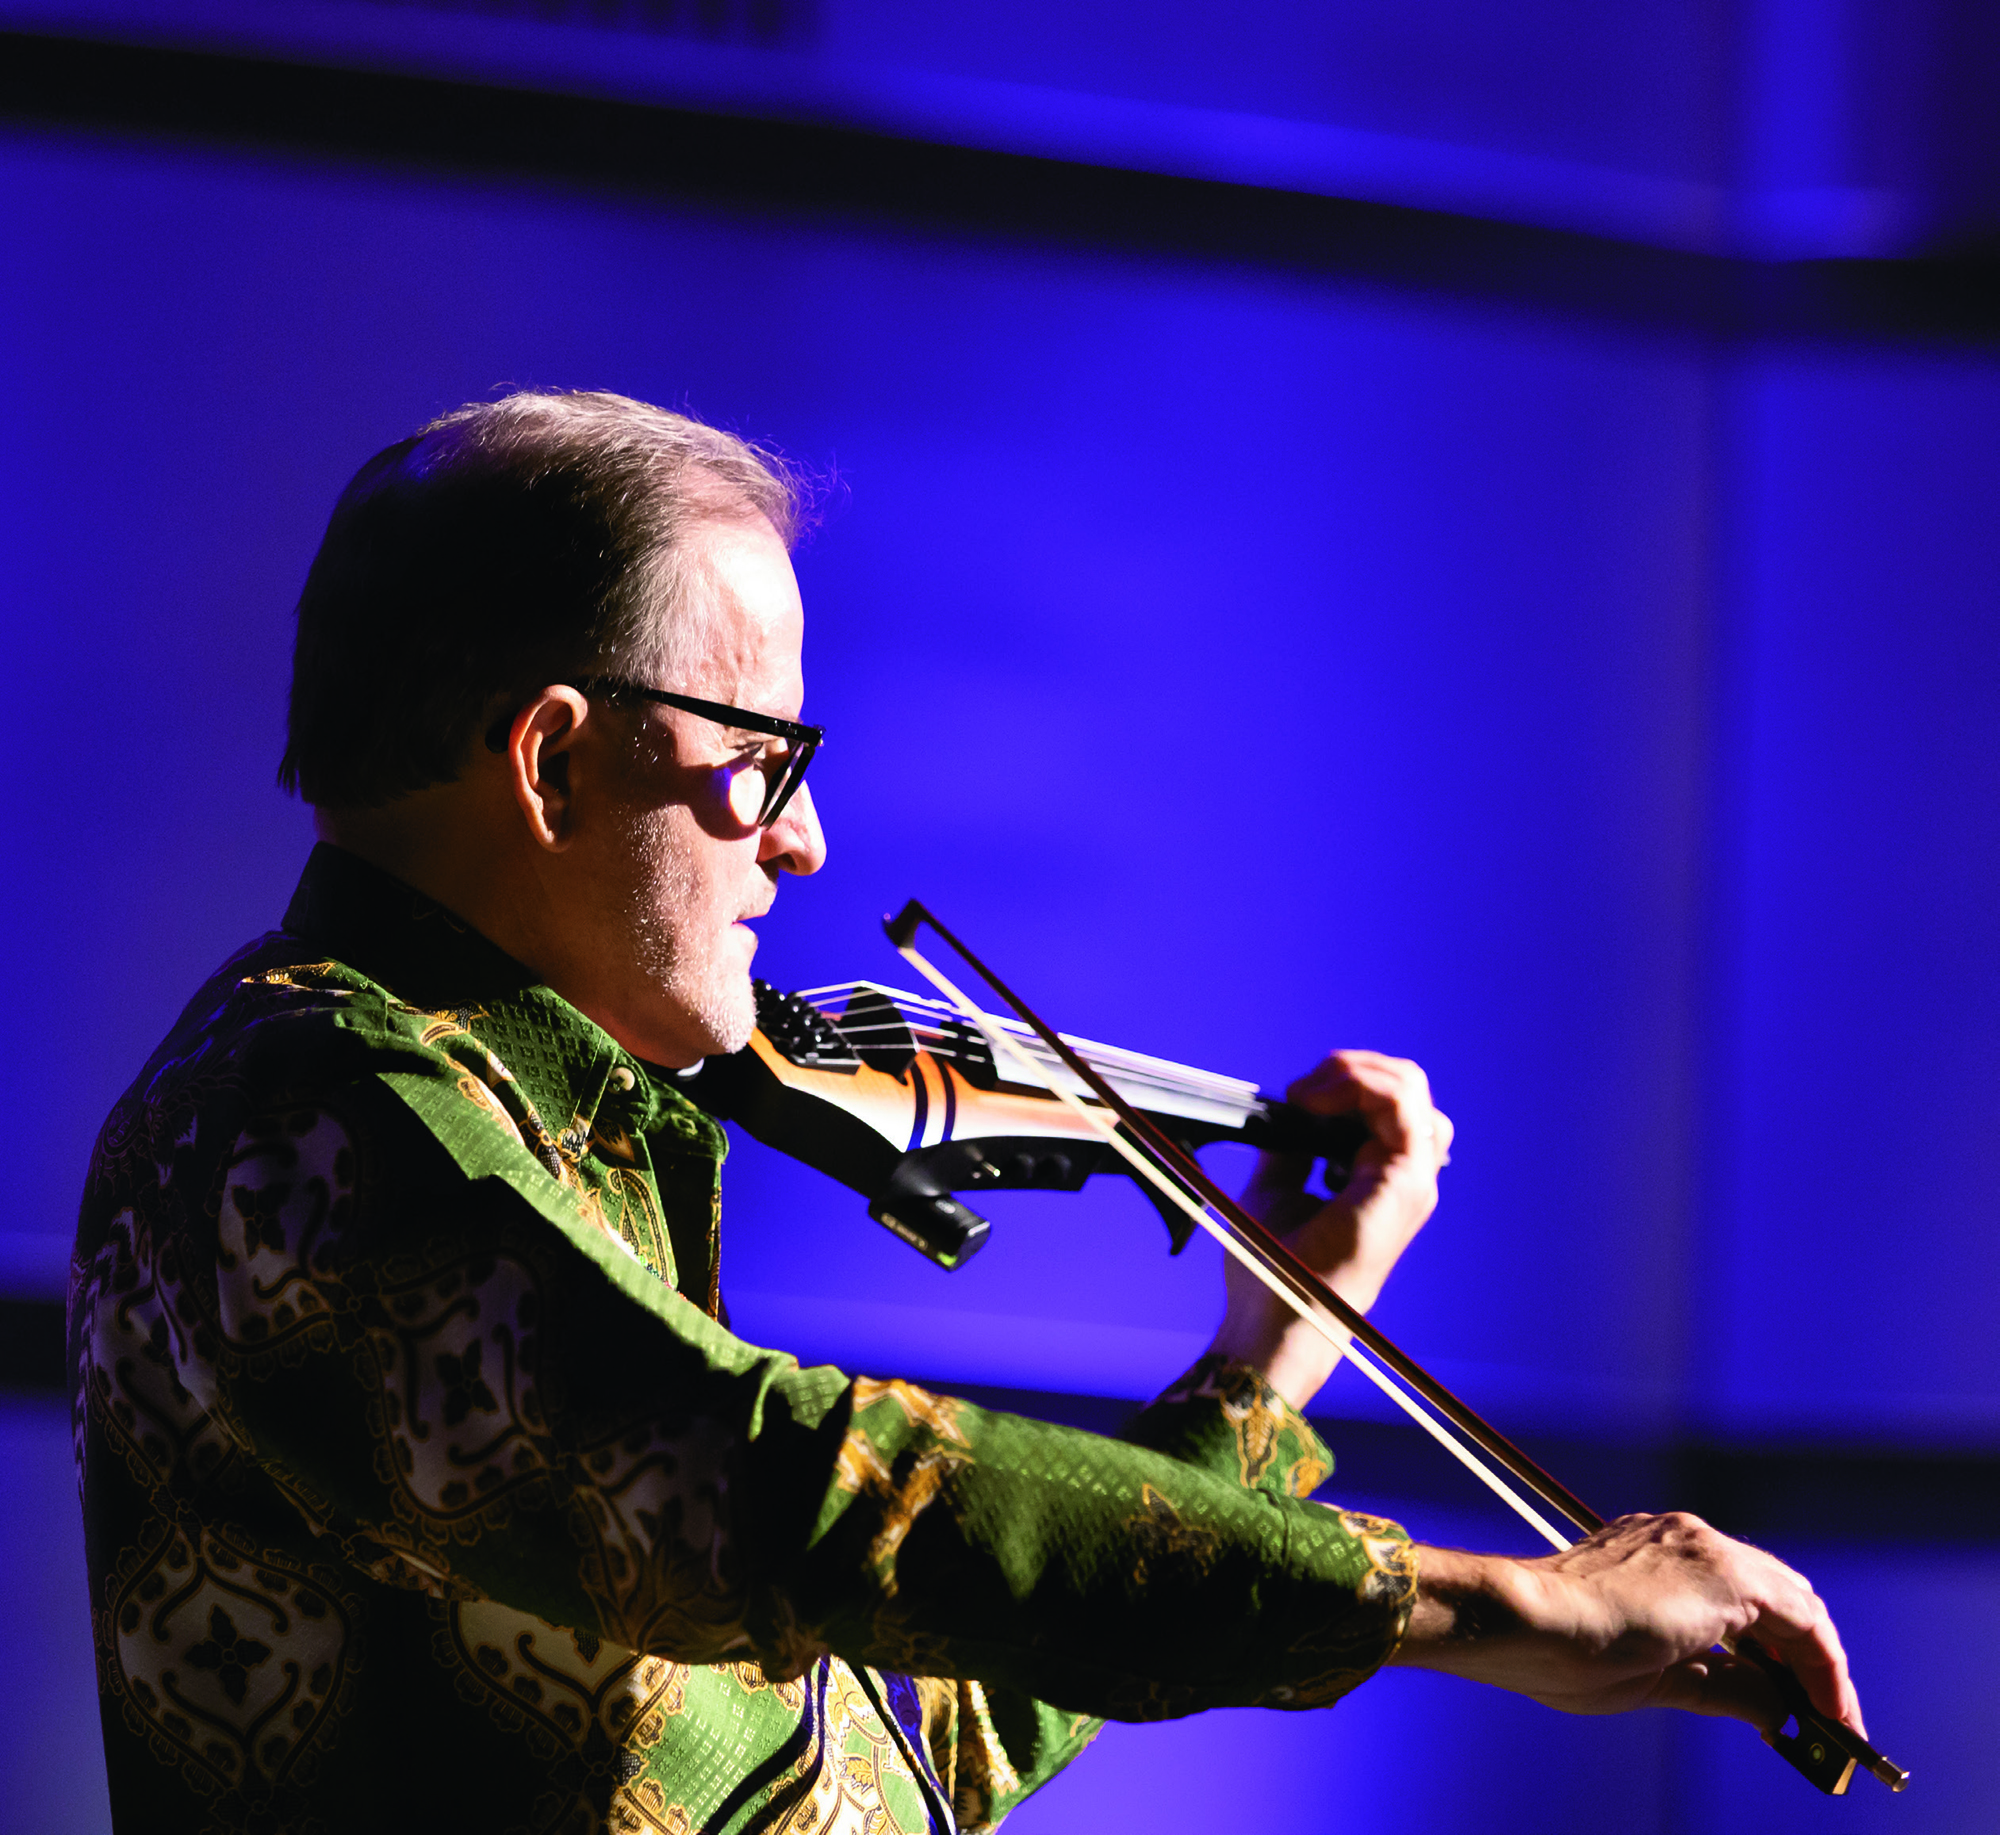 Rosenboom performing on 5-string electric violin at the concert Propositional Music at the Wild Beast during CalArts Weekend in 2019.